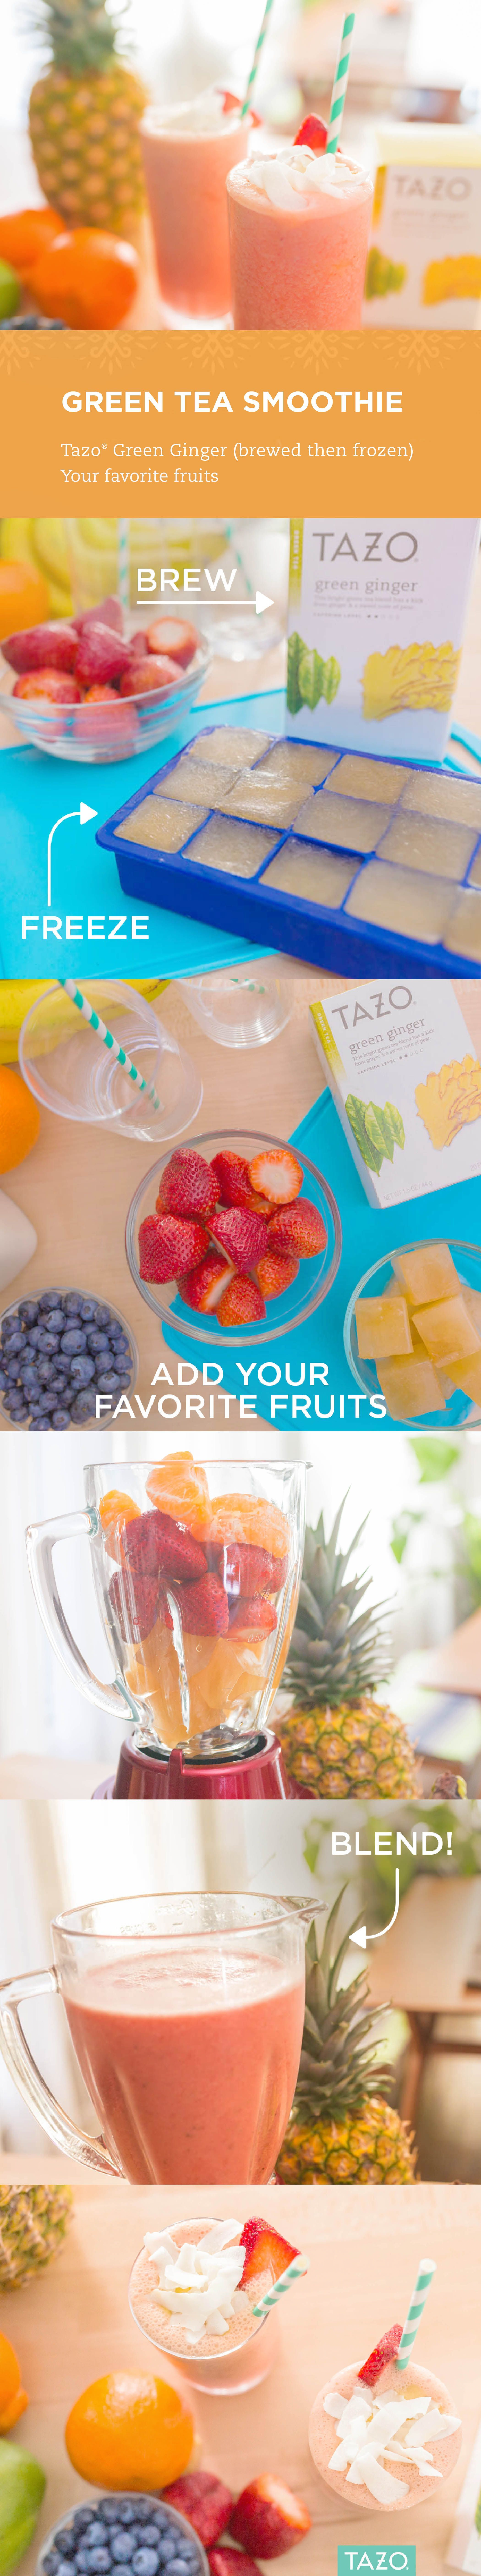 Give your next smoothie some extra zing when you swap out